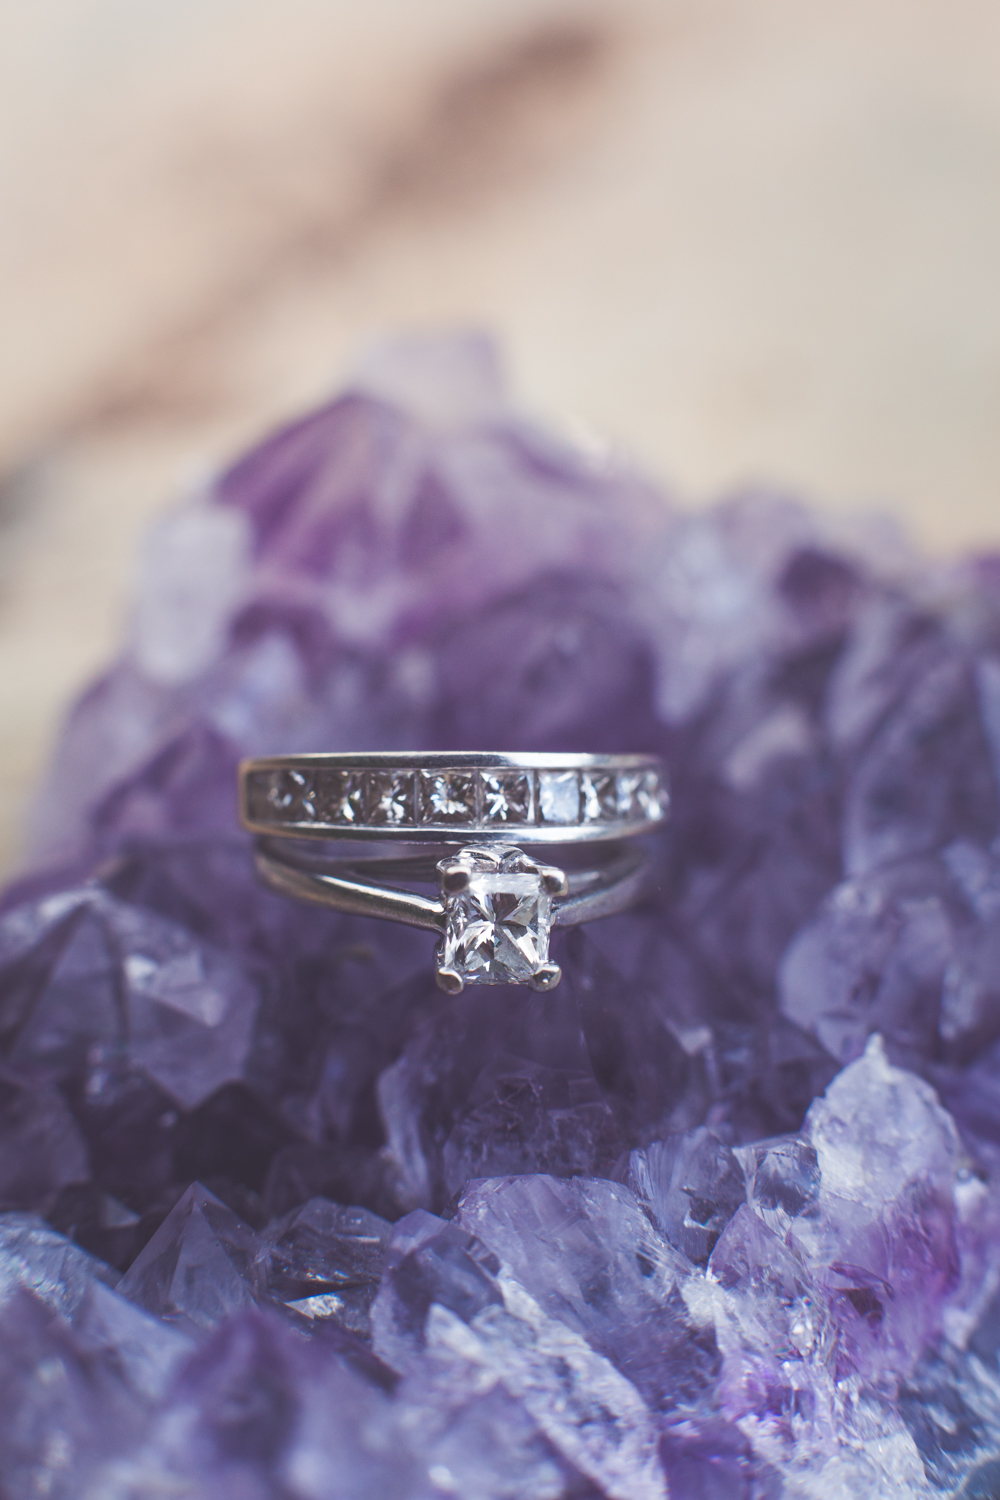 ring photographed on amethyst